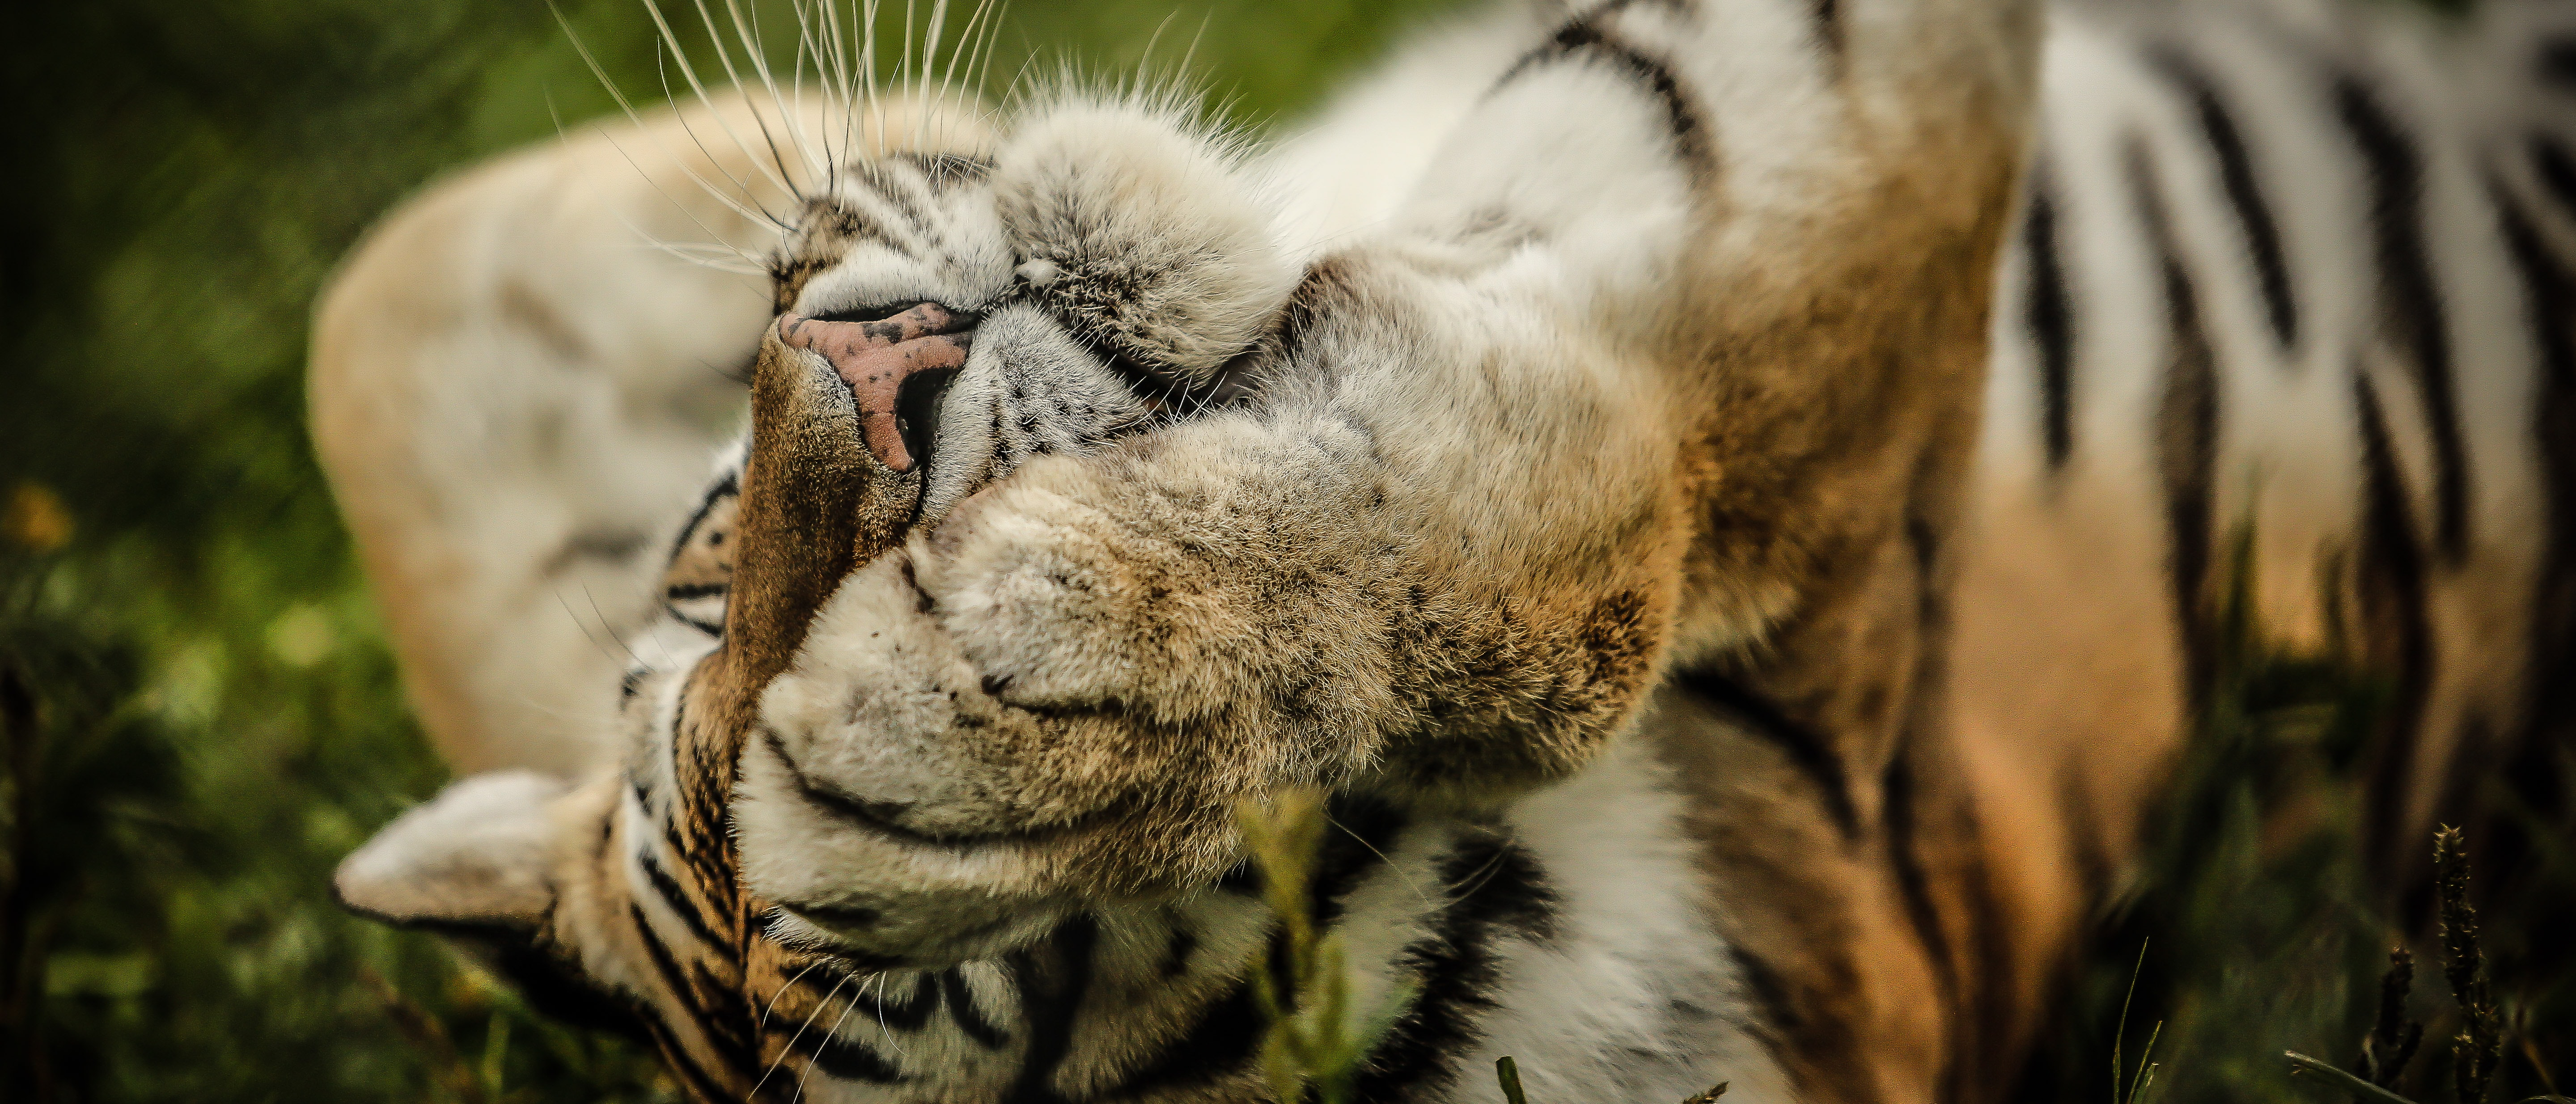 beige, black, and white tiger lying down on grass